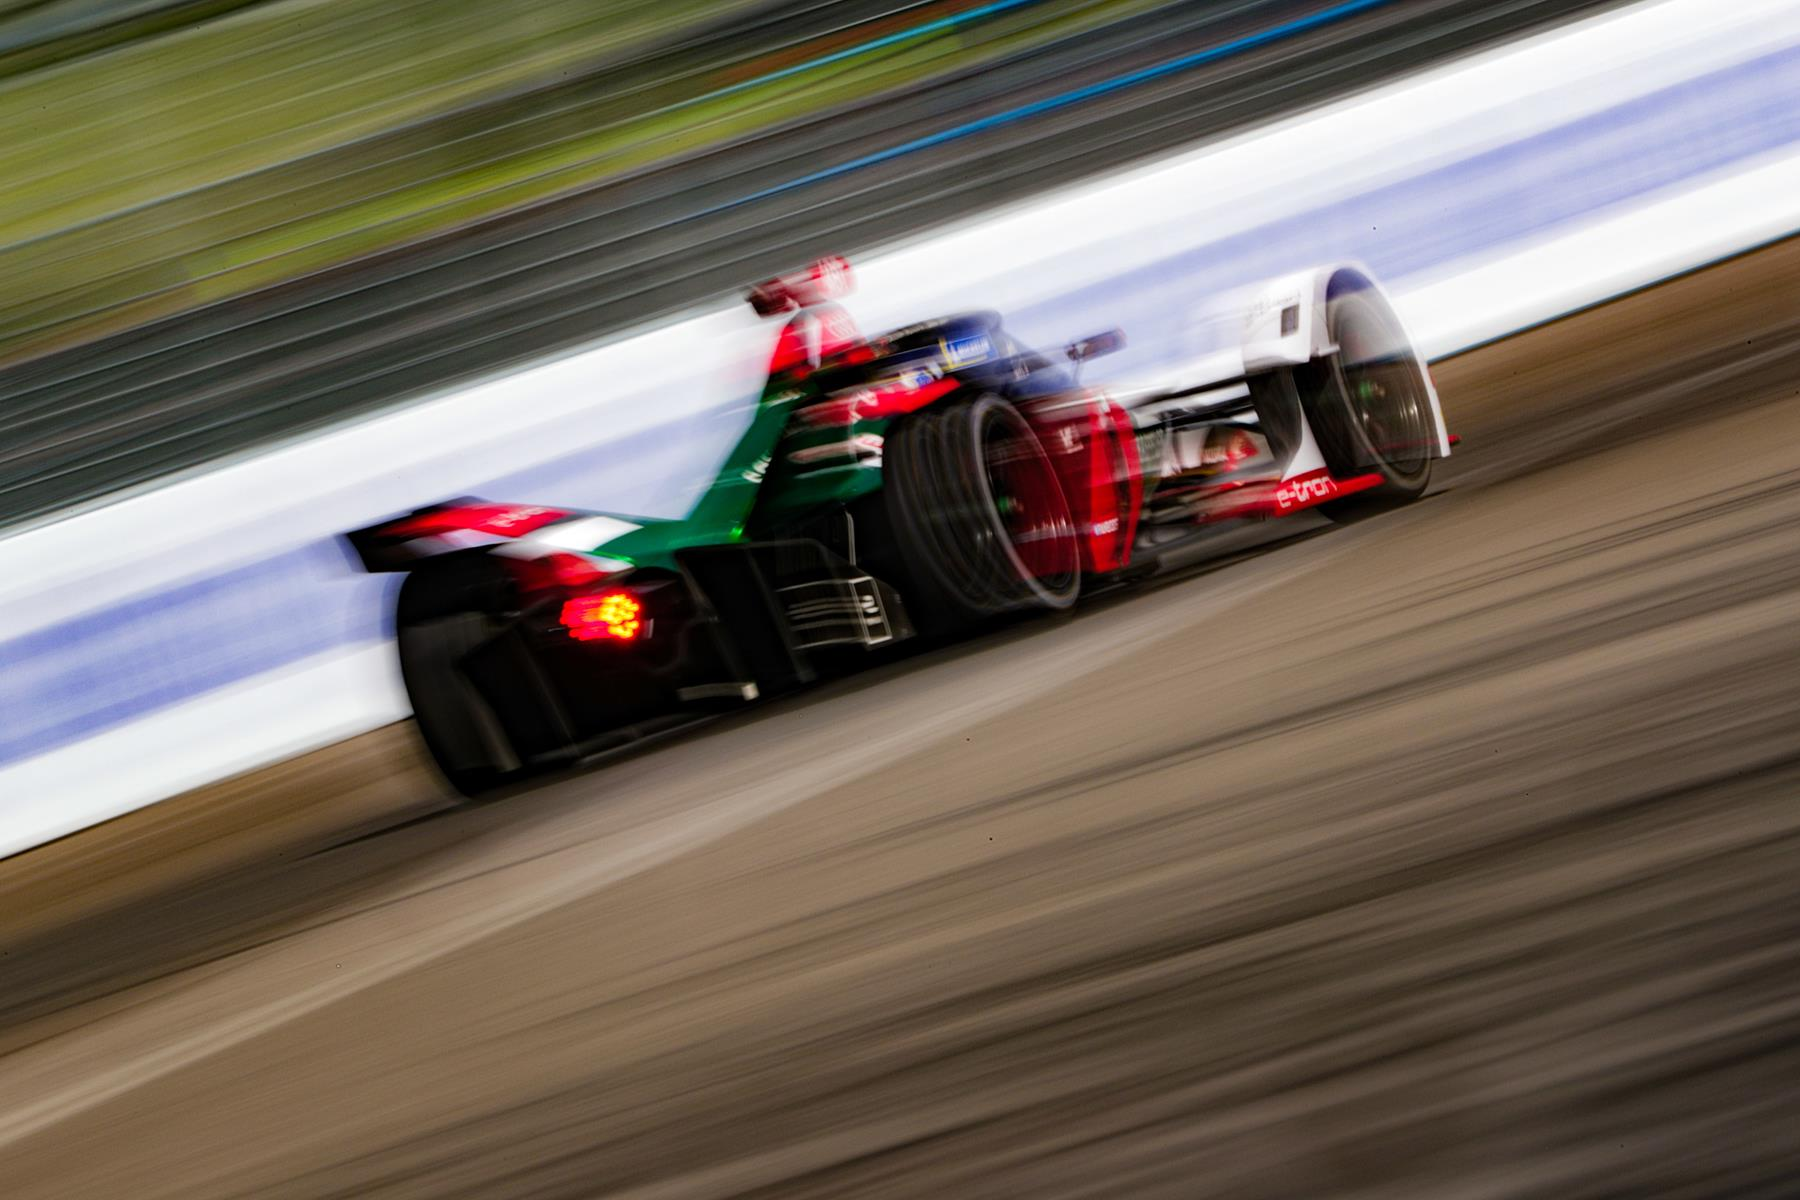 Audi-Formula-E-Car-from-behind-Rome